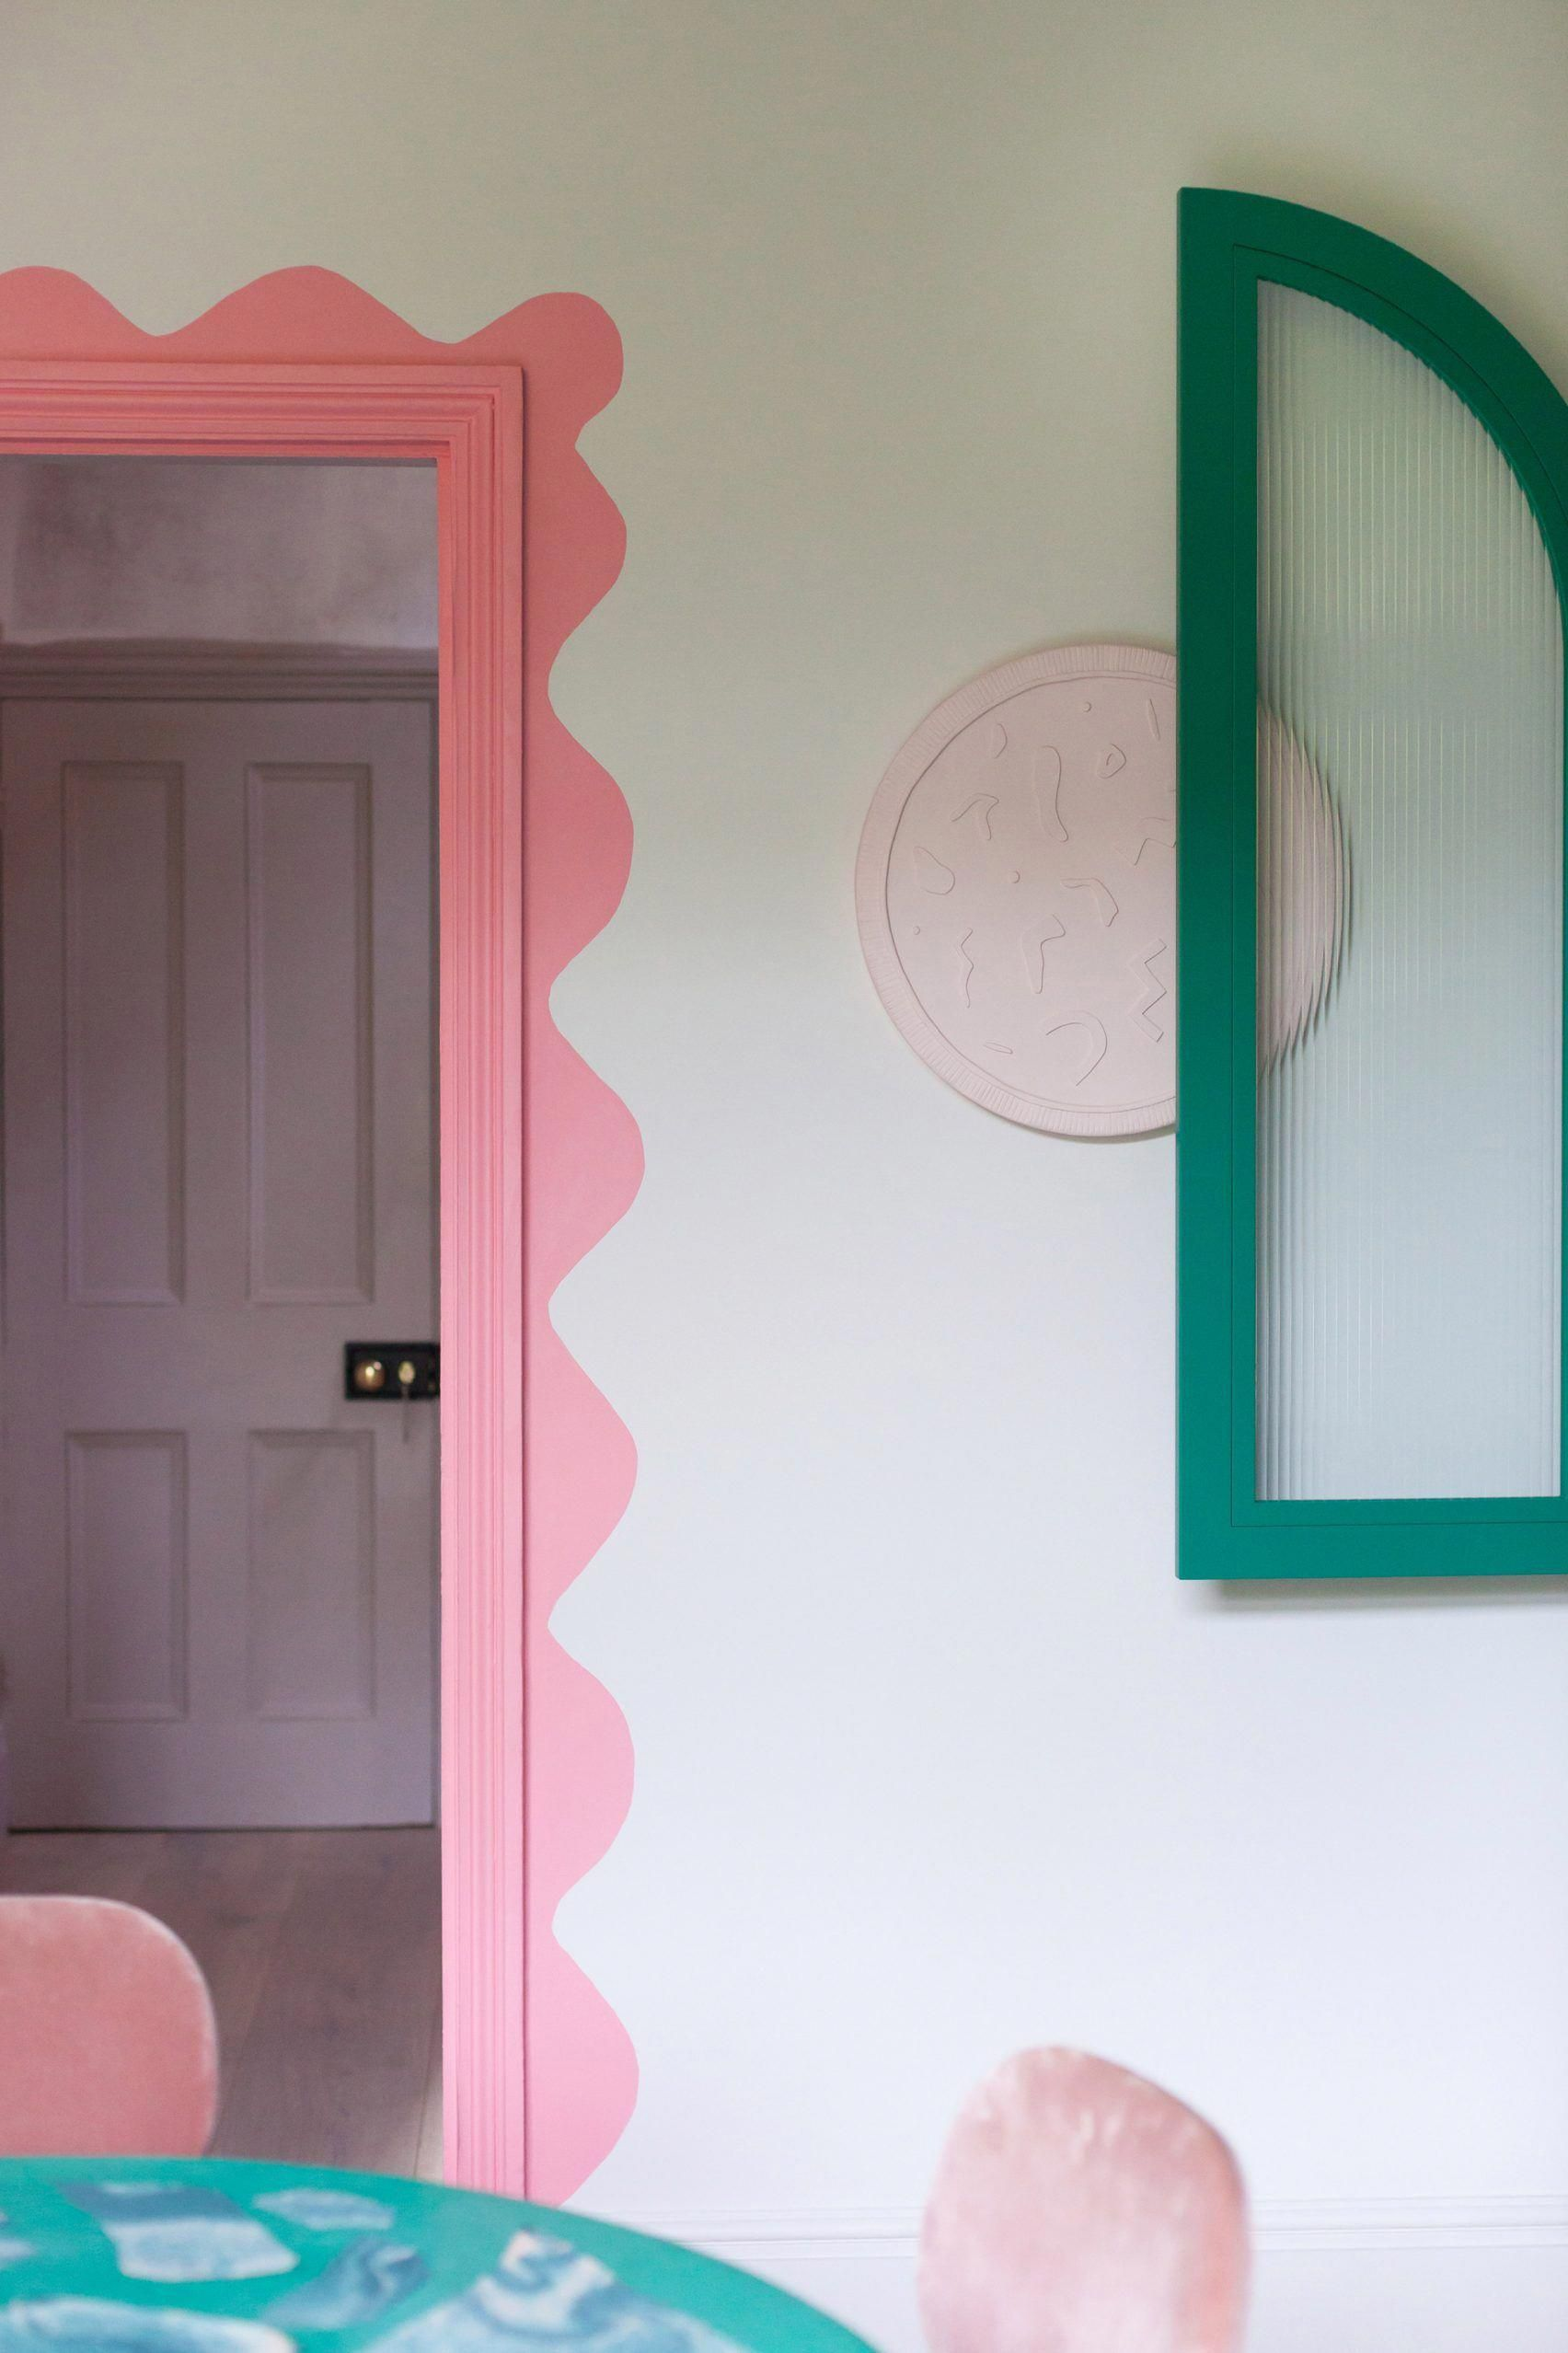 2LG Studio mix pastel hues with quirky details for